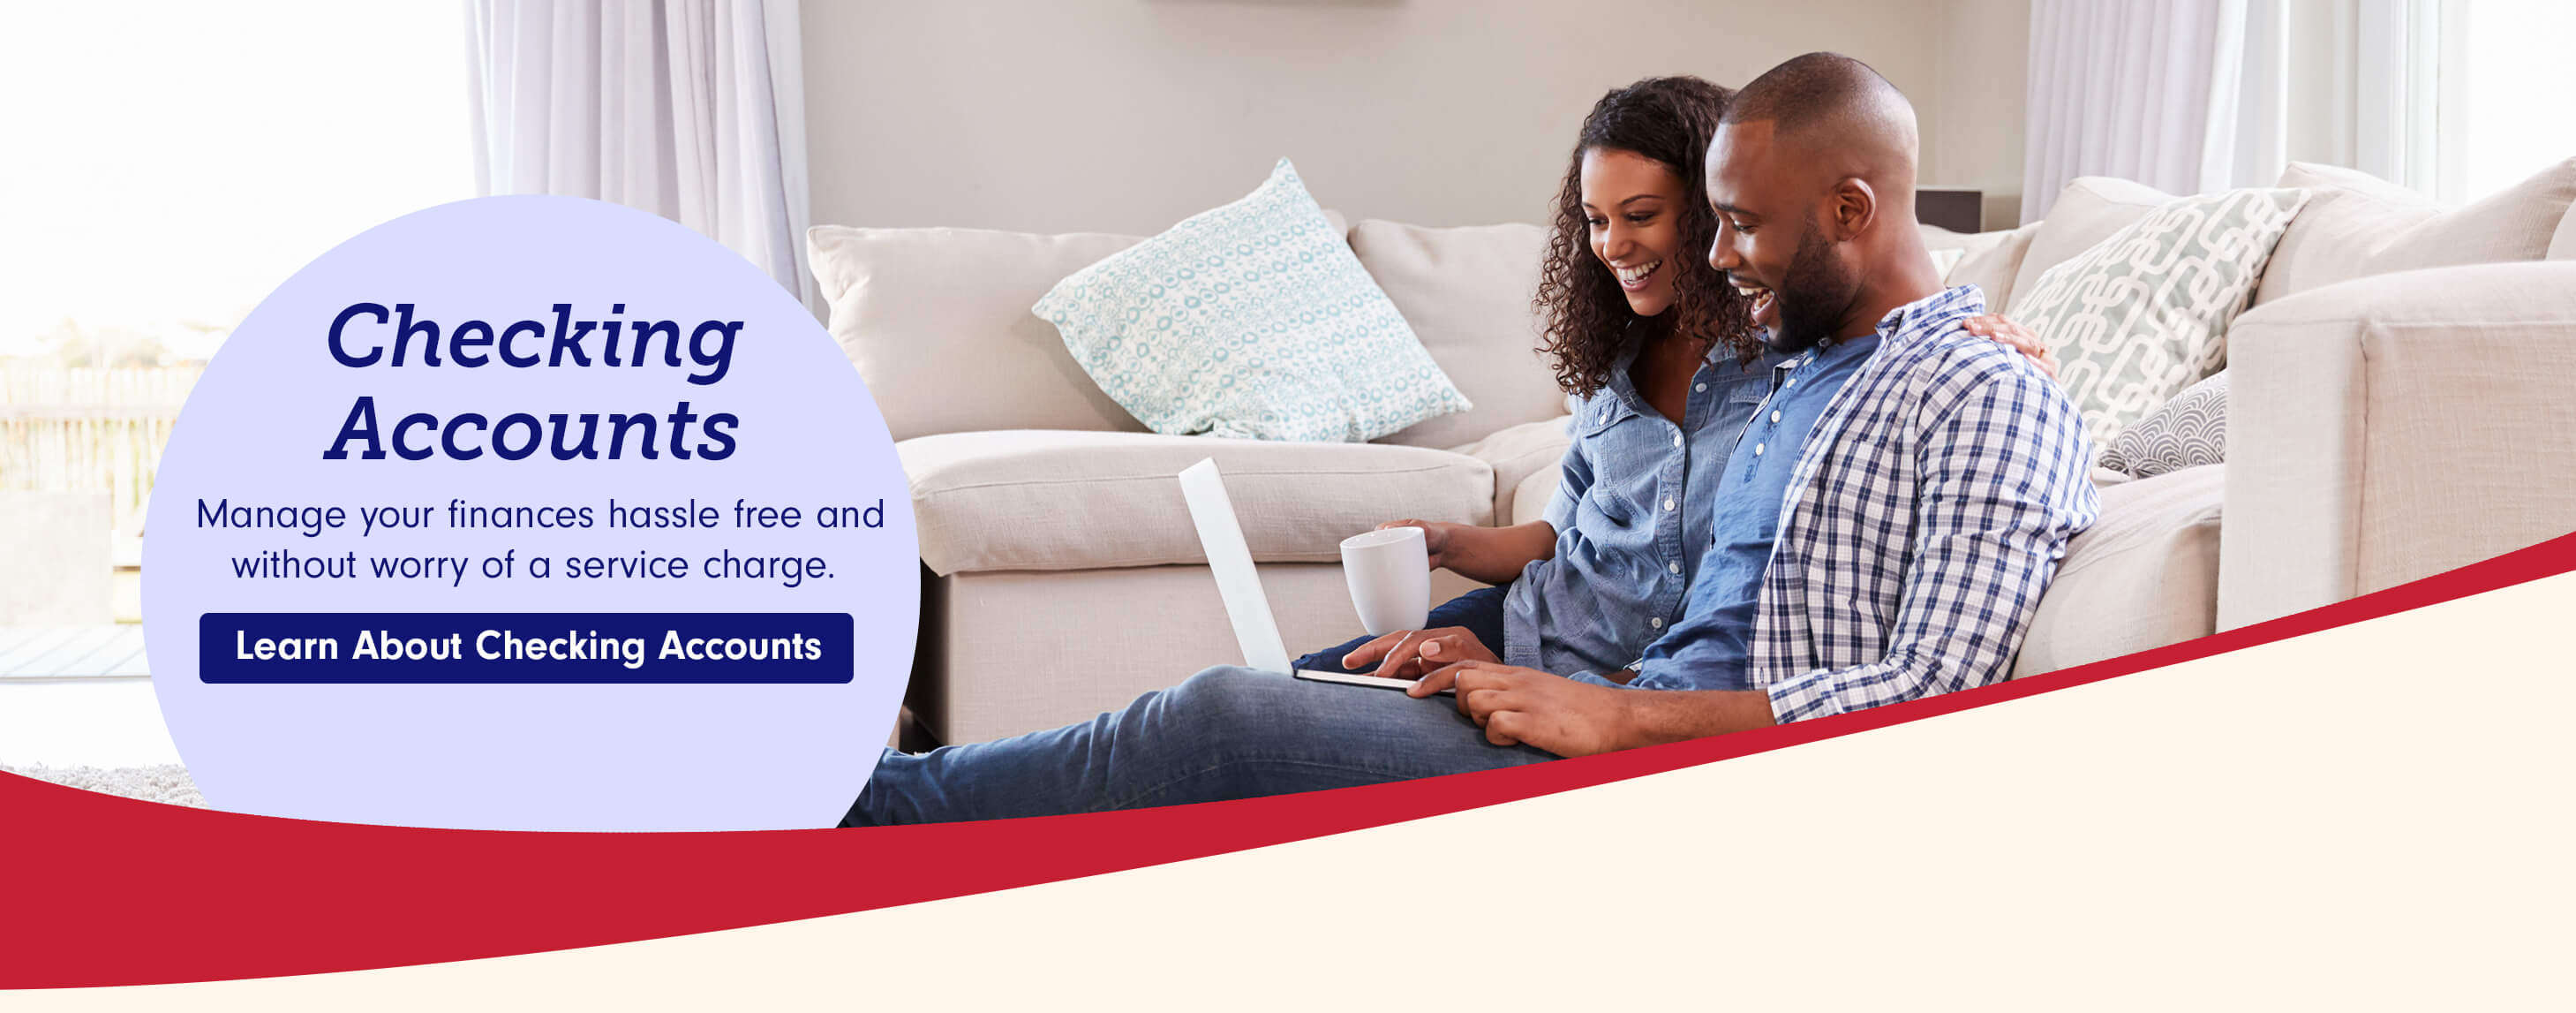 Checking Accounts  Manage your finances hassle free and without worry of a service charge. Learn about checking accounts